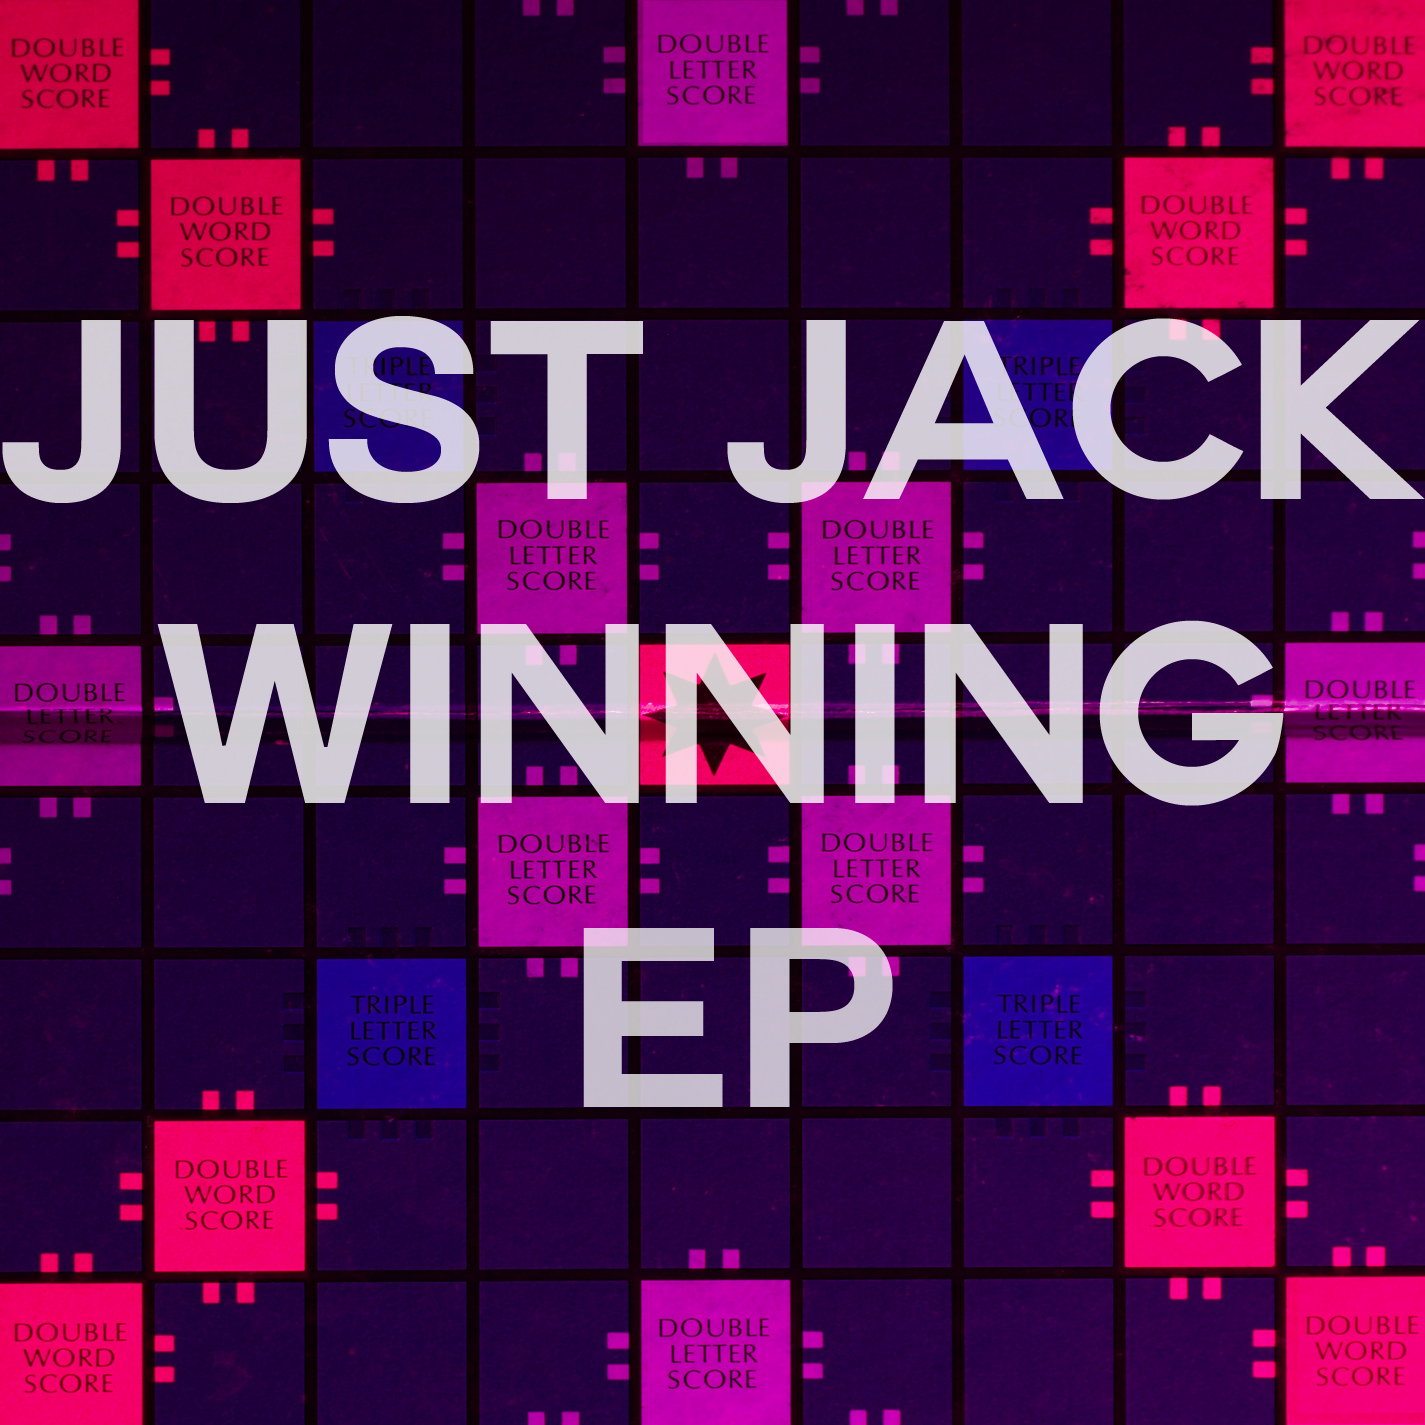 Winning EP - Download - Just Jack